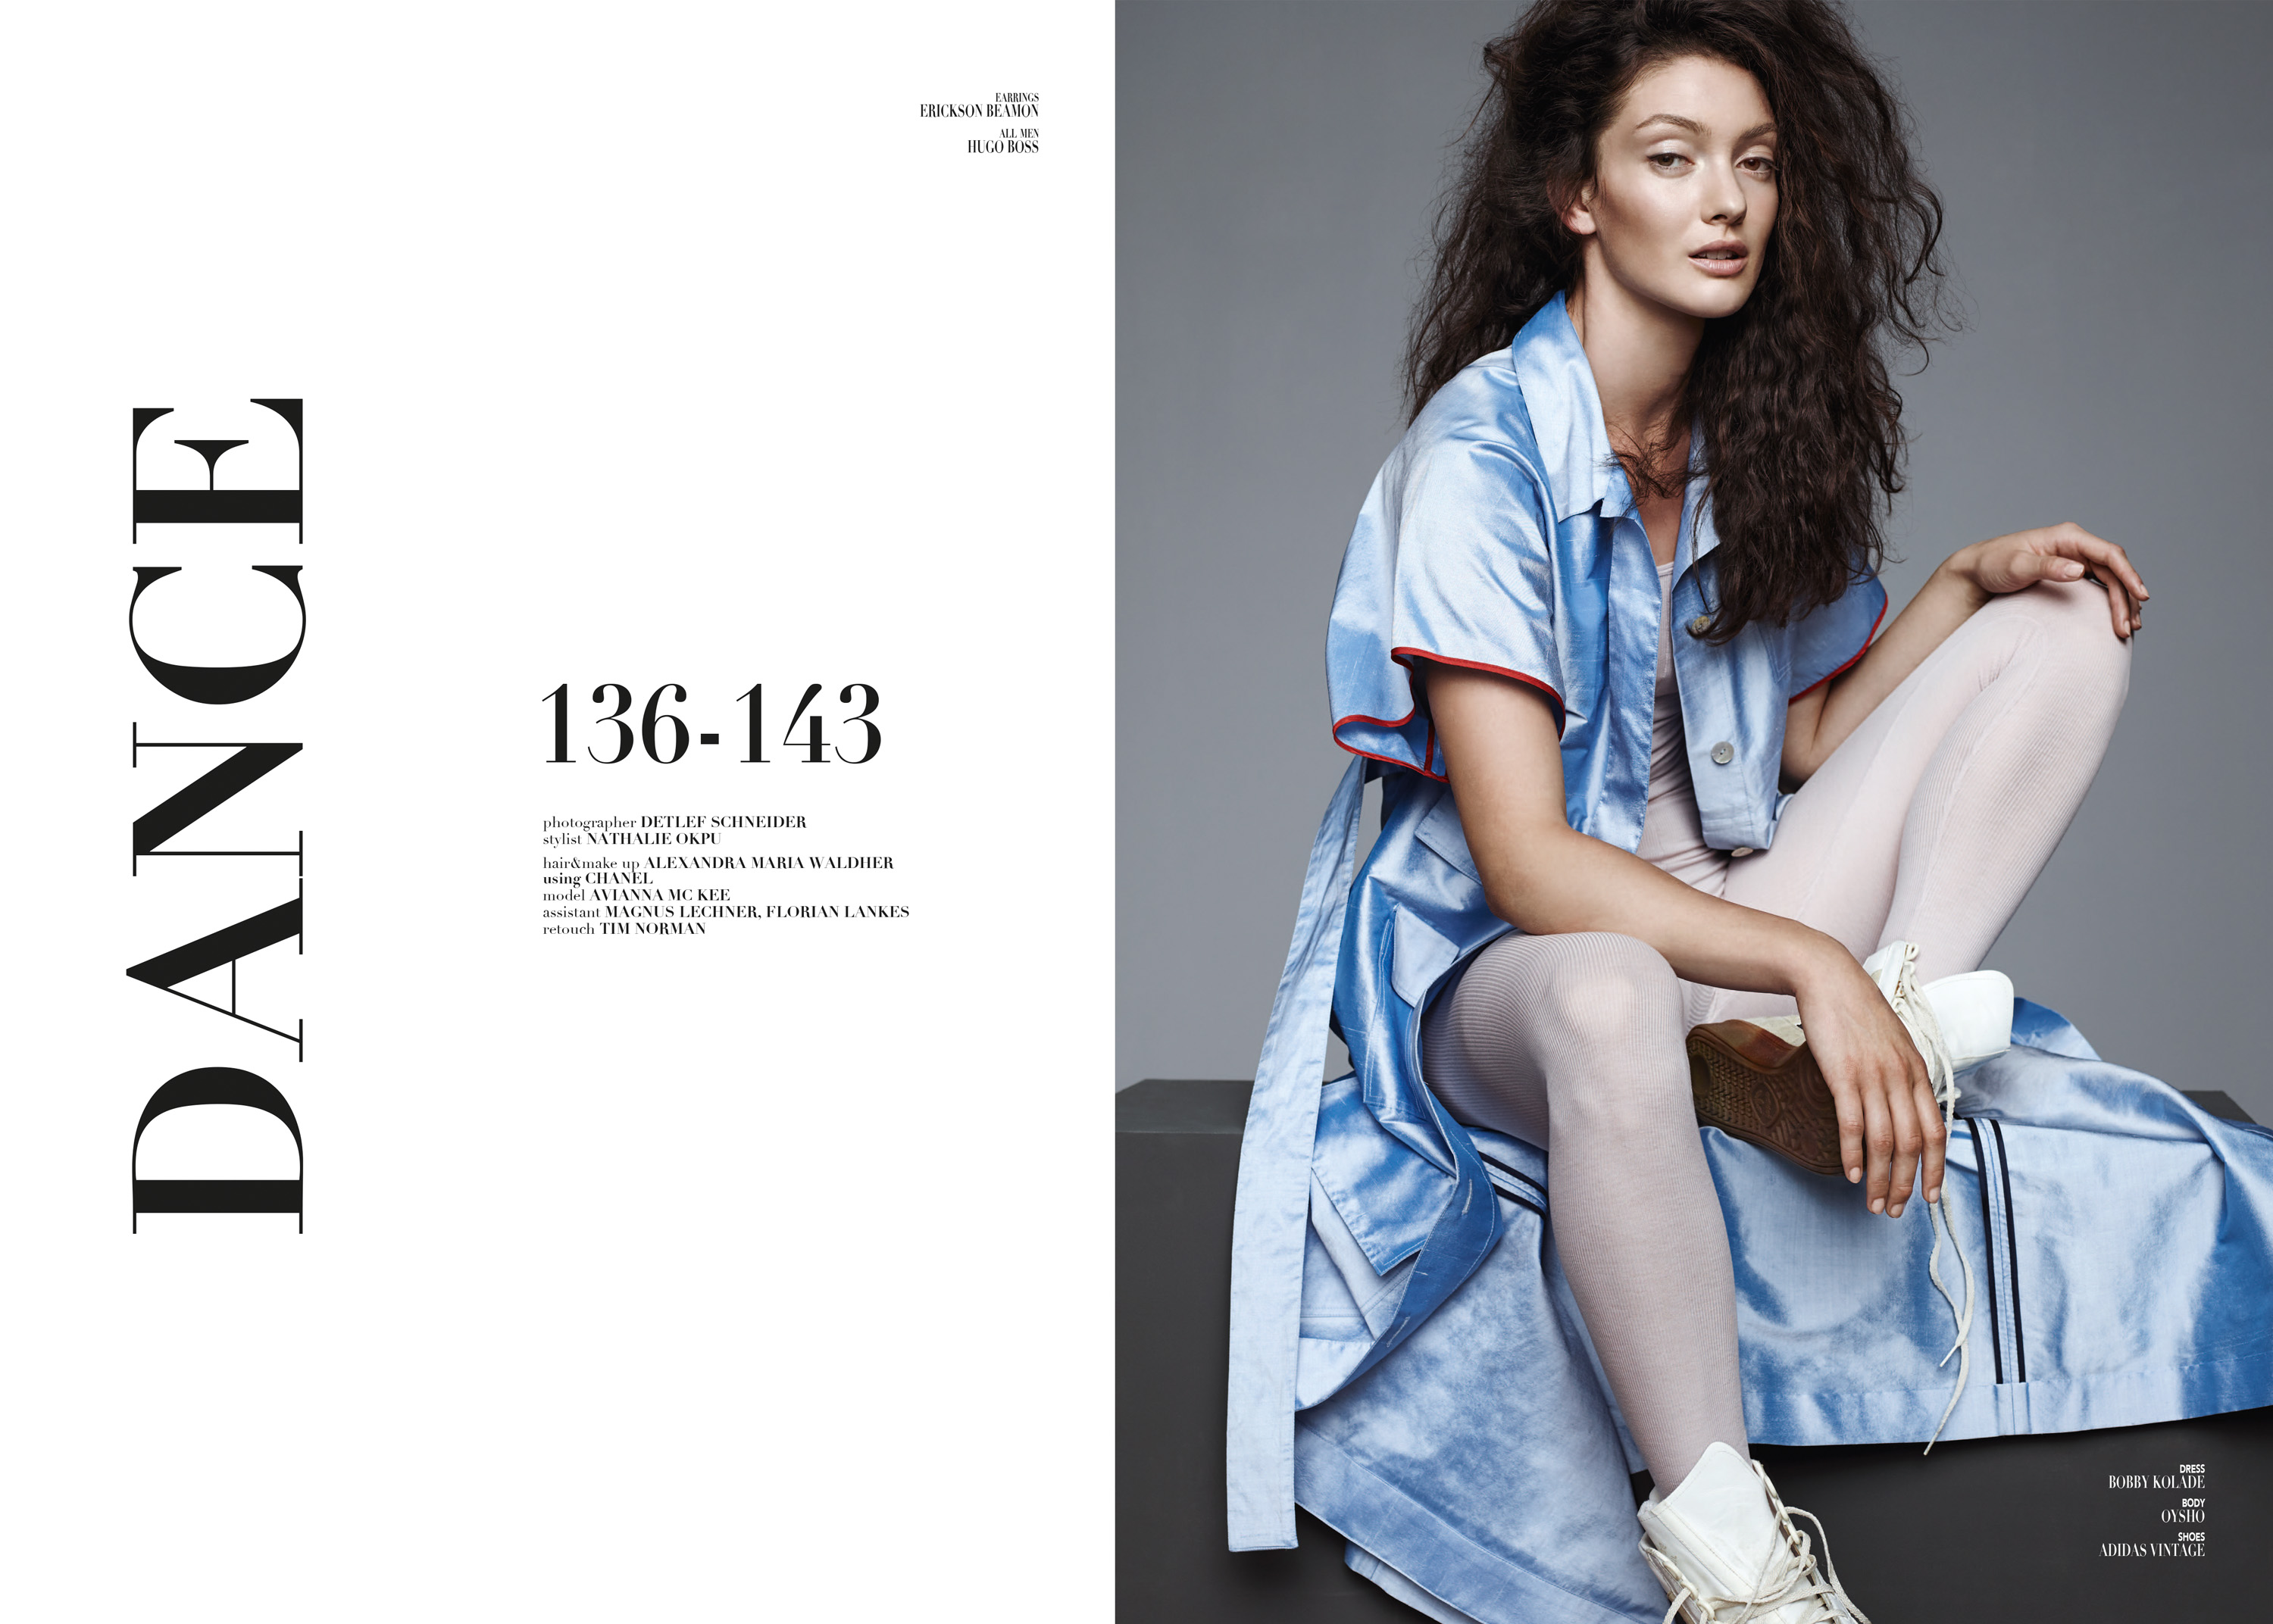 Detlef Schneider Photography, Le Mile Magazine, Nathalie Opku Styling, Model Avianna McKee